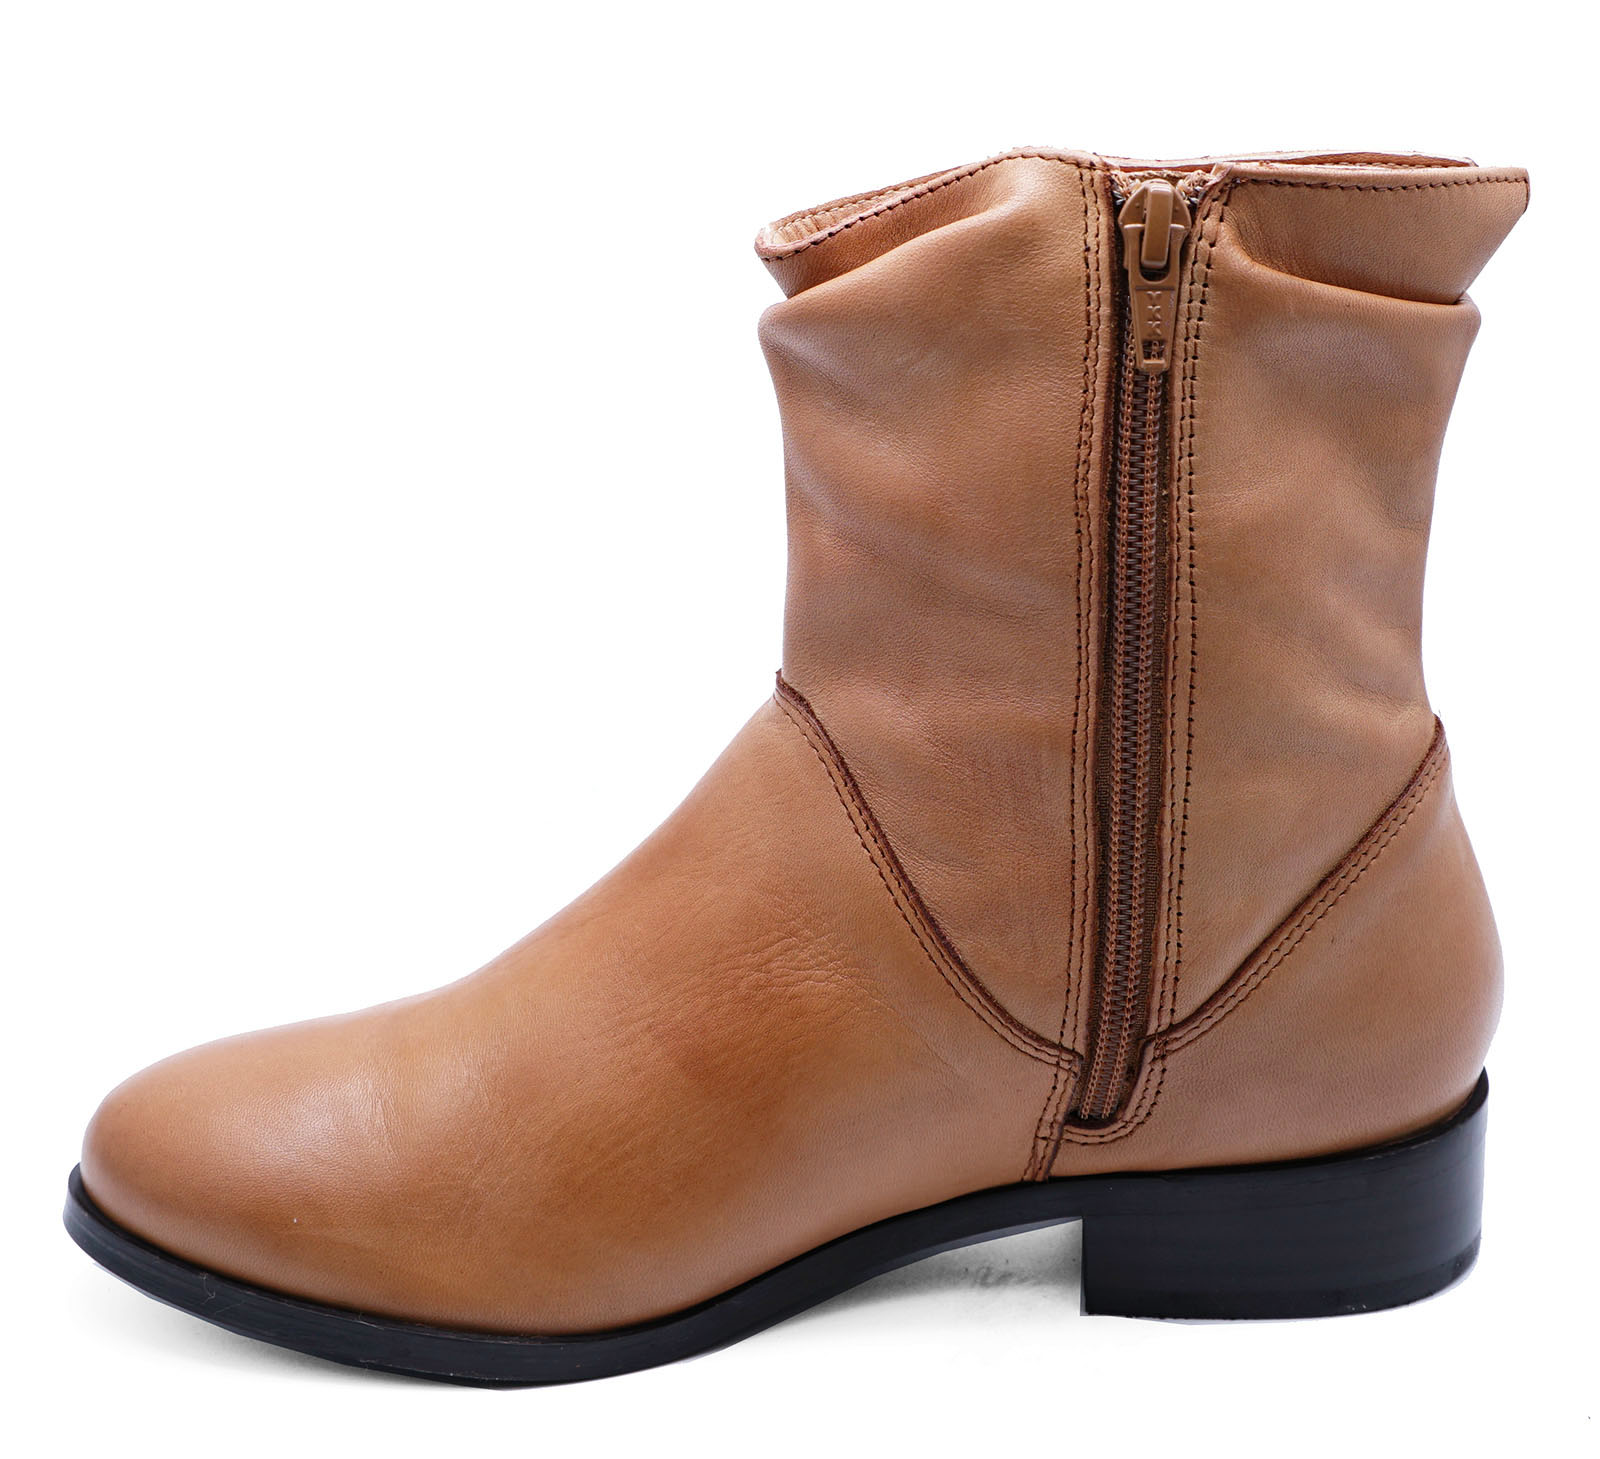 LADIES-FLAT-GENUINE-LEATHER-TAN-ZIP-UP-ANKLE-CALF-BOOTS-COMFY-SHOES-SIZES-2-9 thumbnail 23